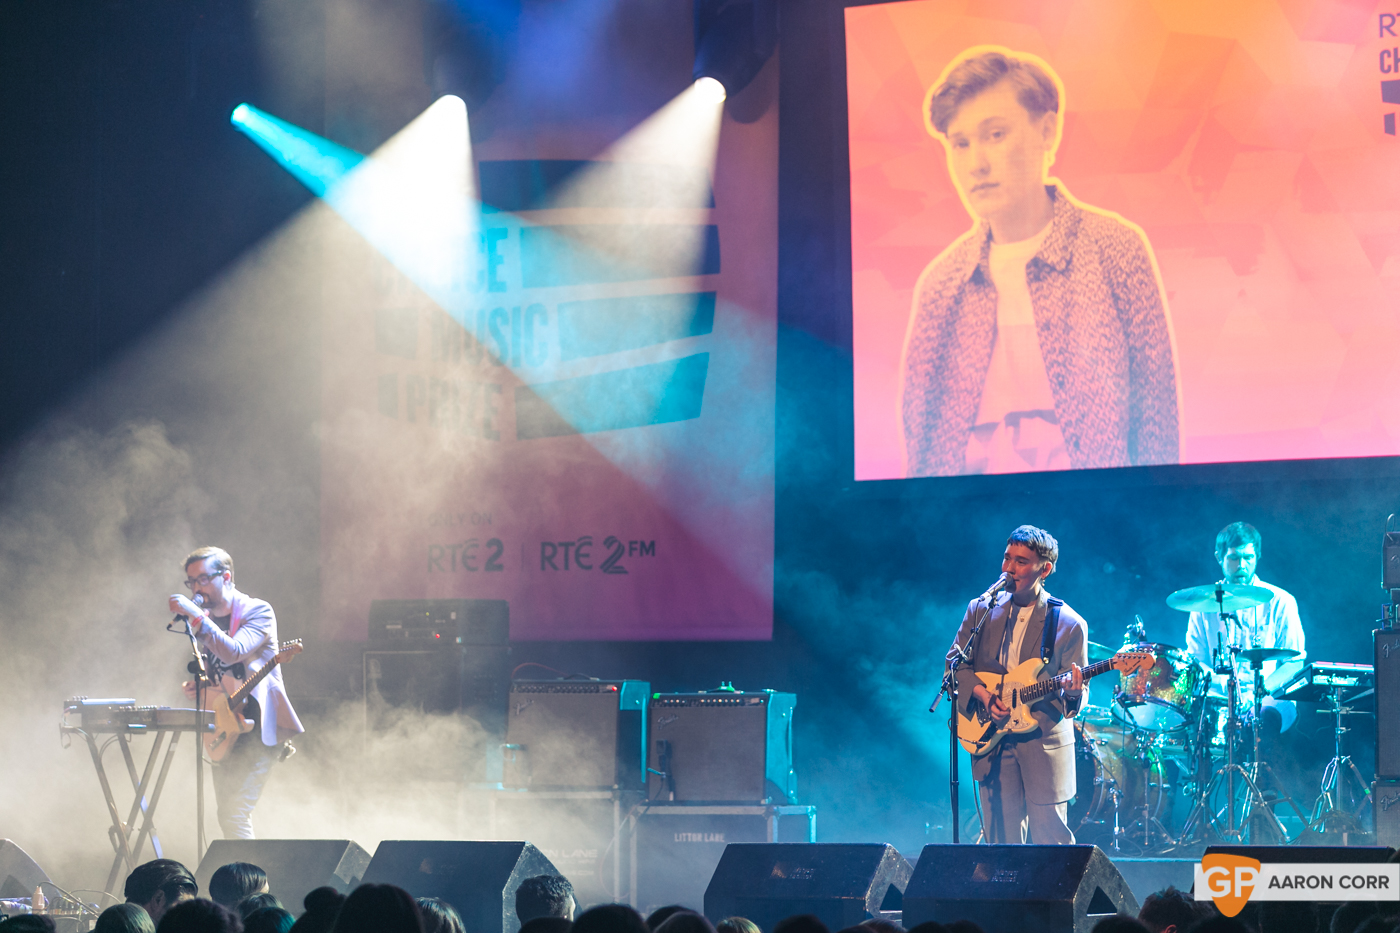 Soak at Choice Music Prize 2020 in Vicar Street, Dublin on 05-Mar-20 by Aaron Corr-5015